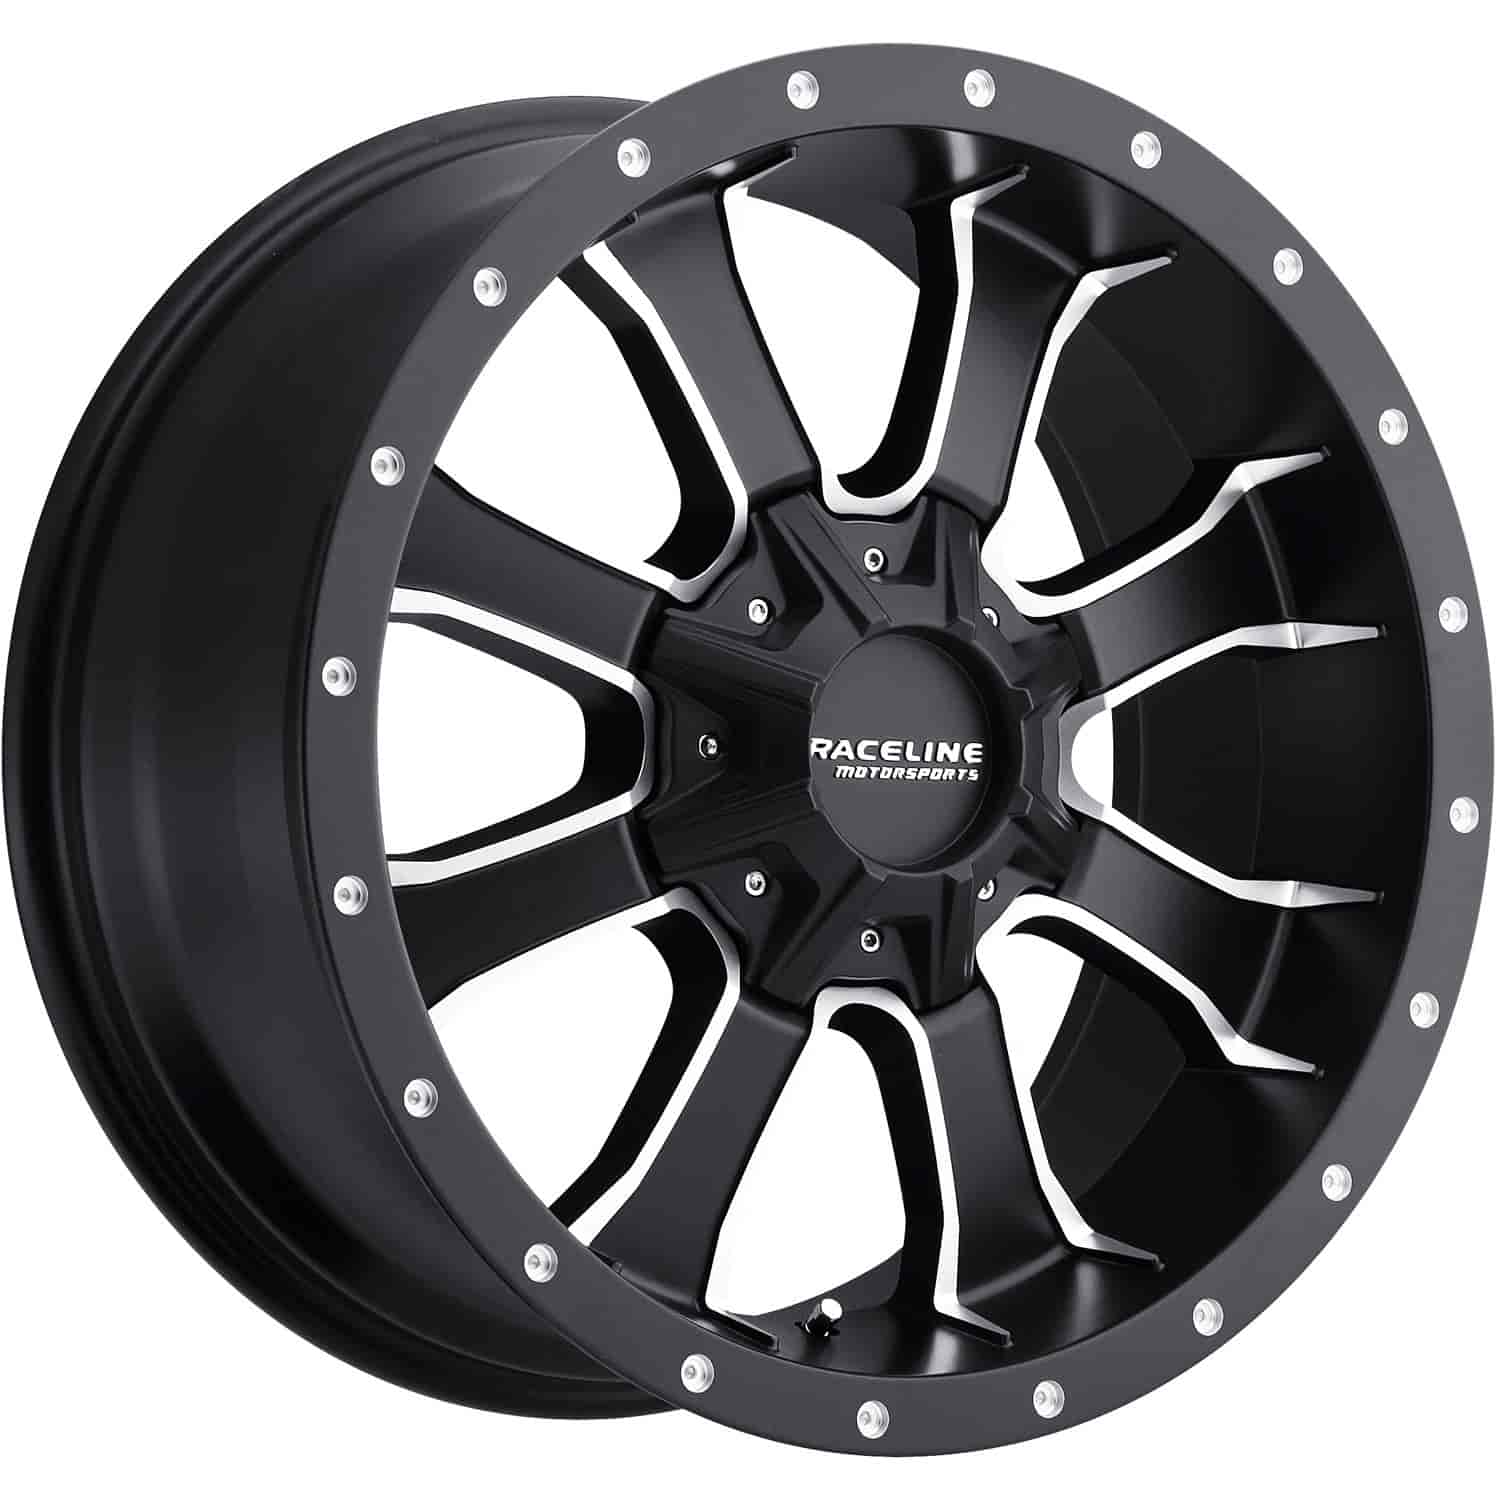 Raceline Wheels 927M-8908012